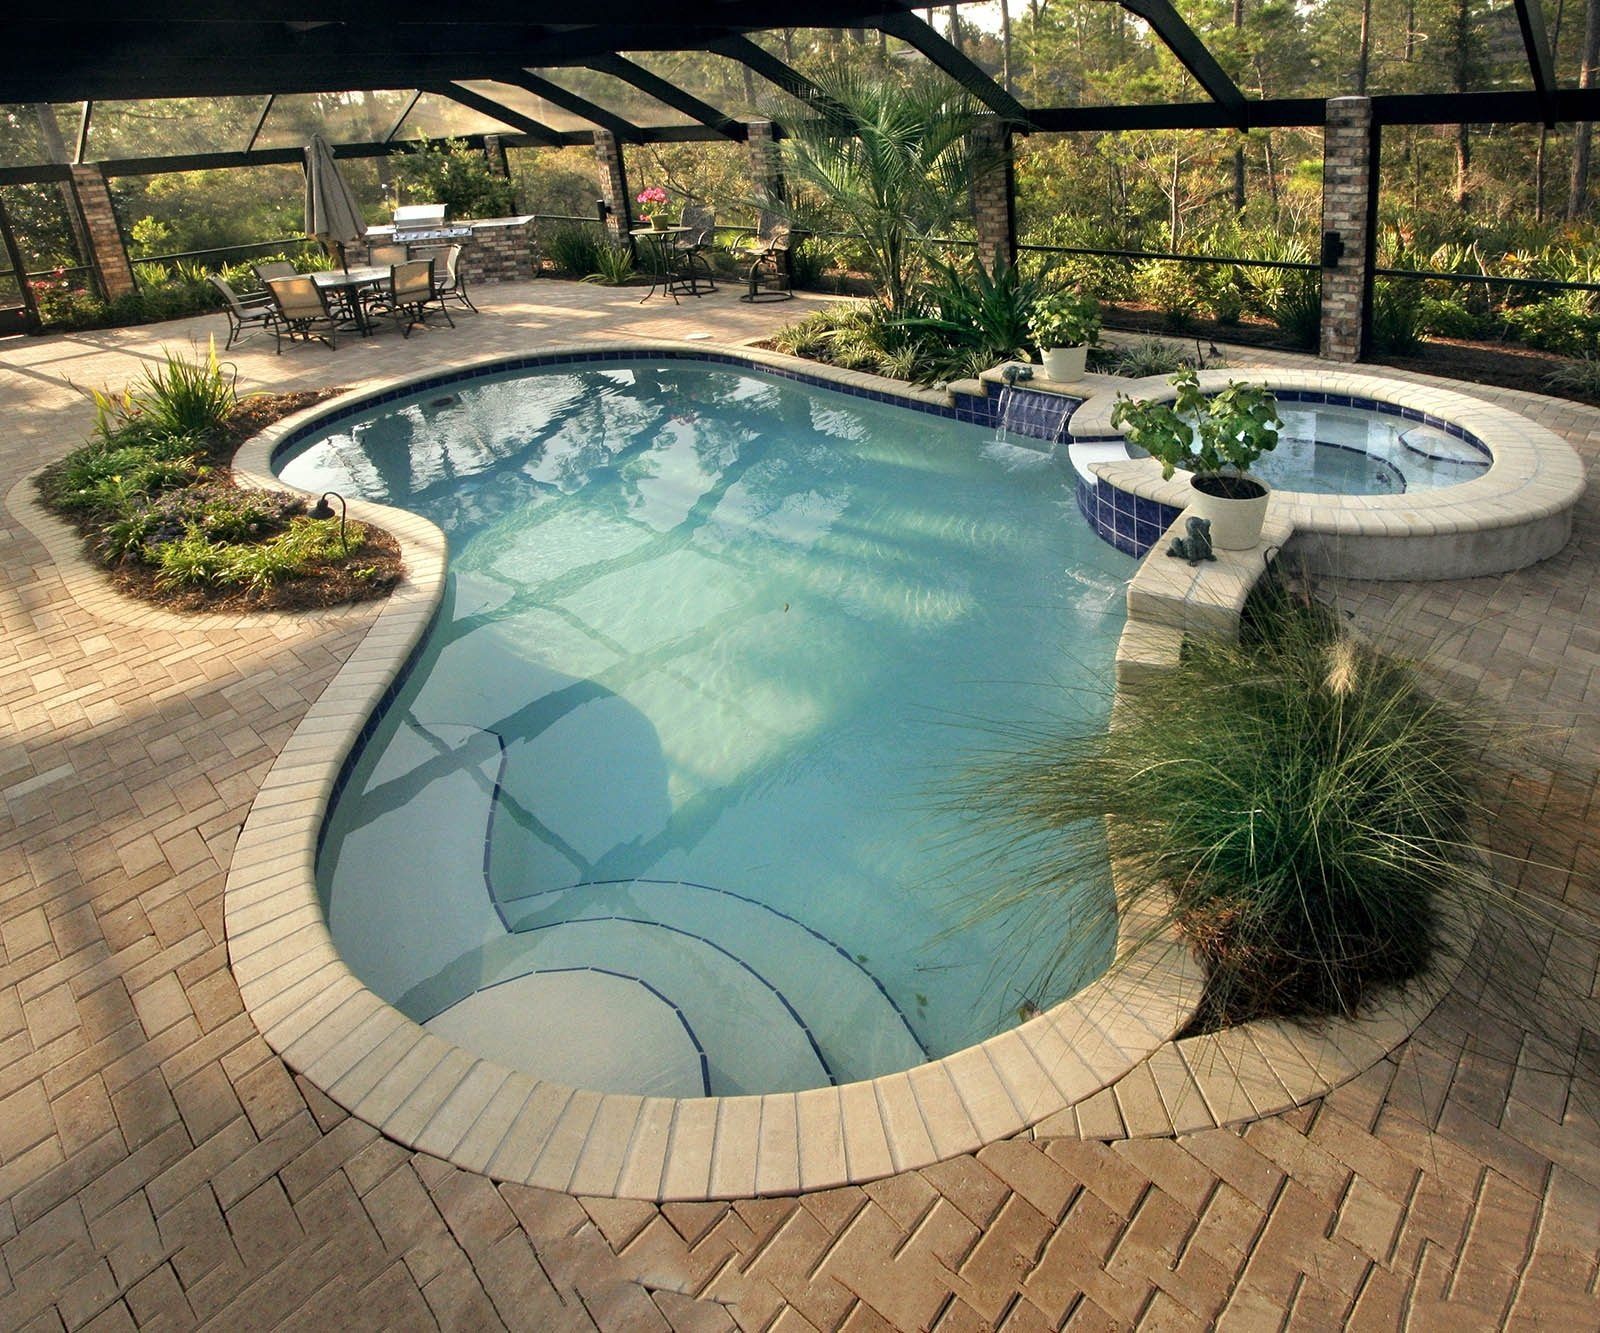 10 Unique In Ground Pool Deck Ideas best swimming pool deck ideas 2020